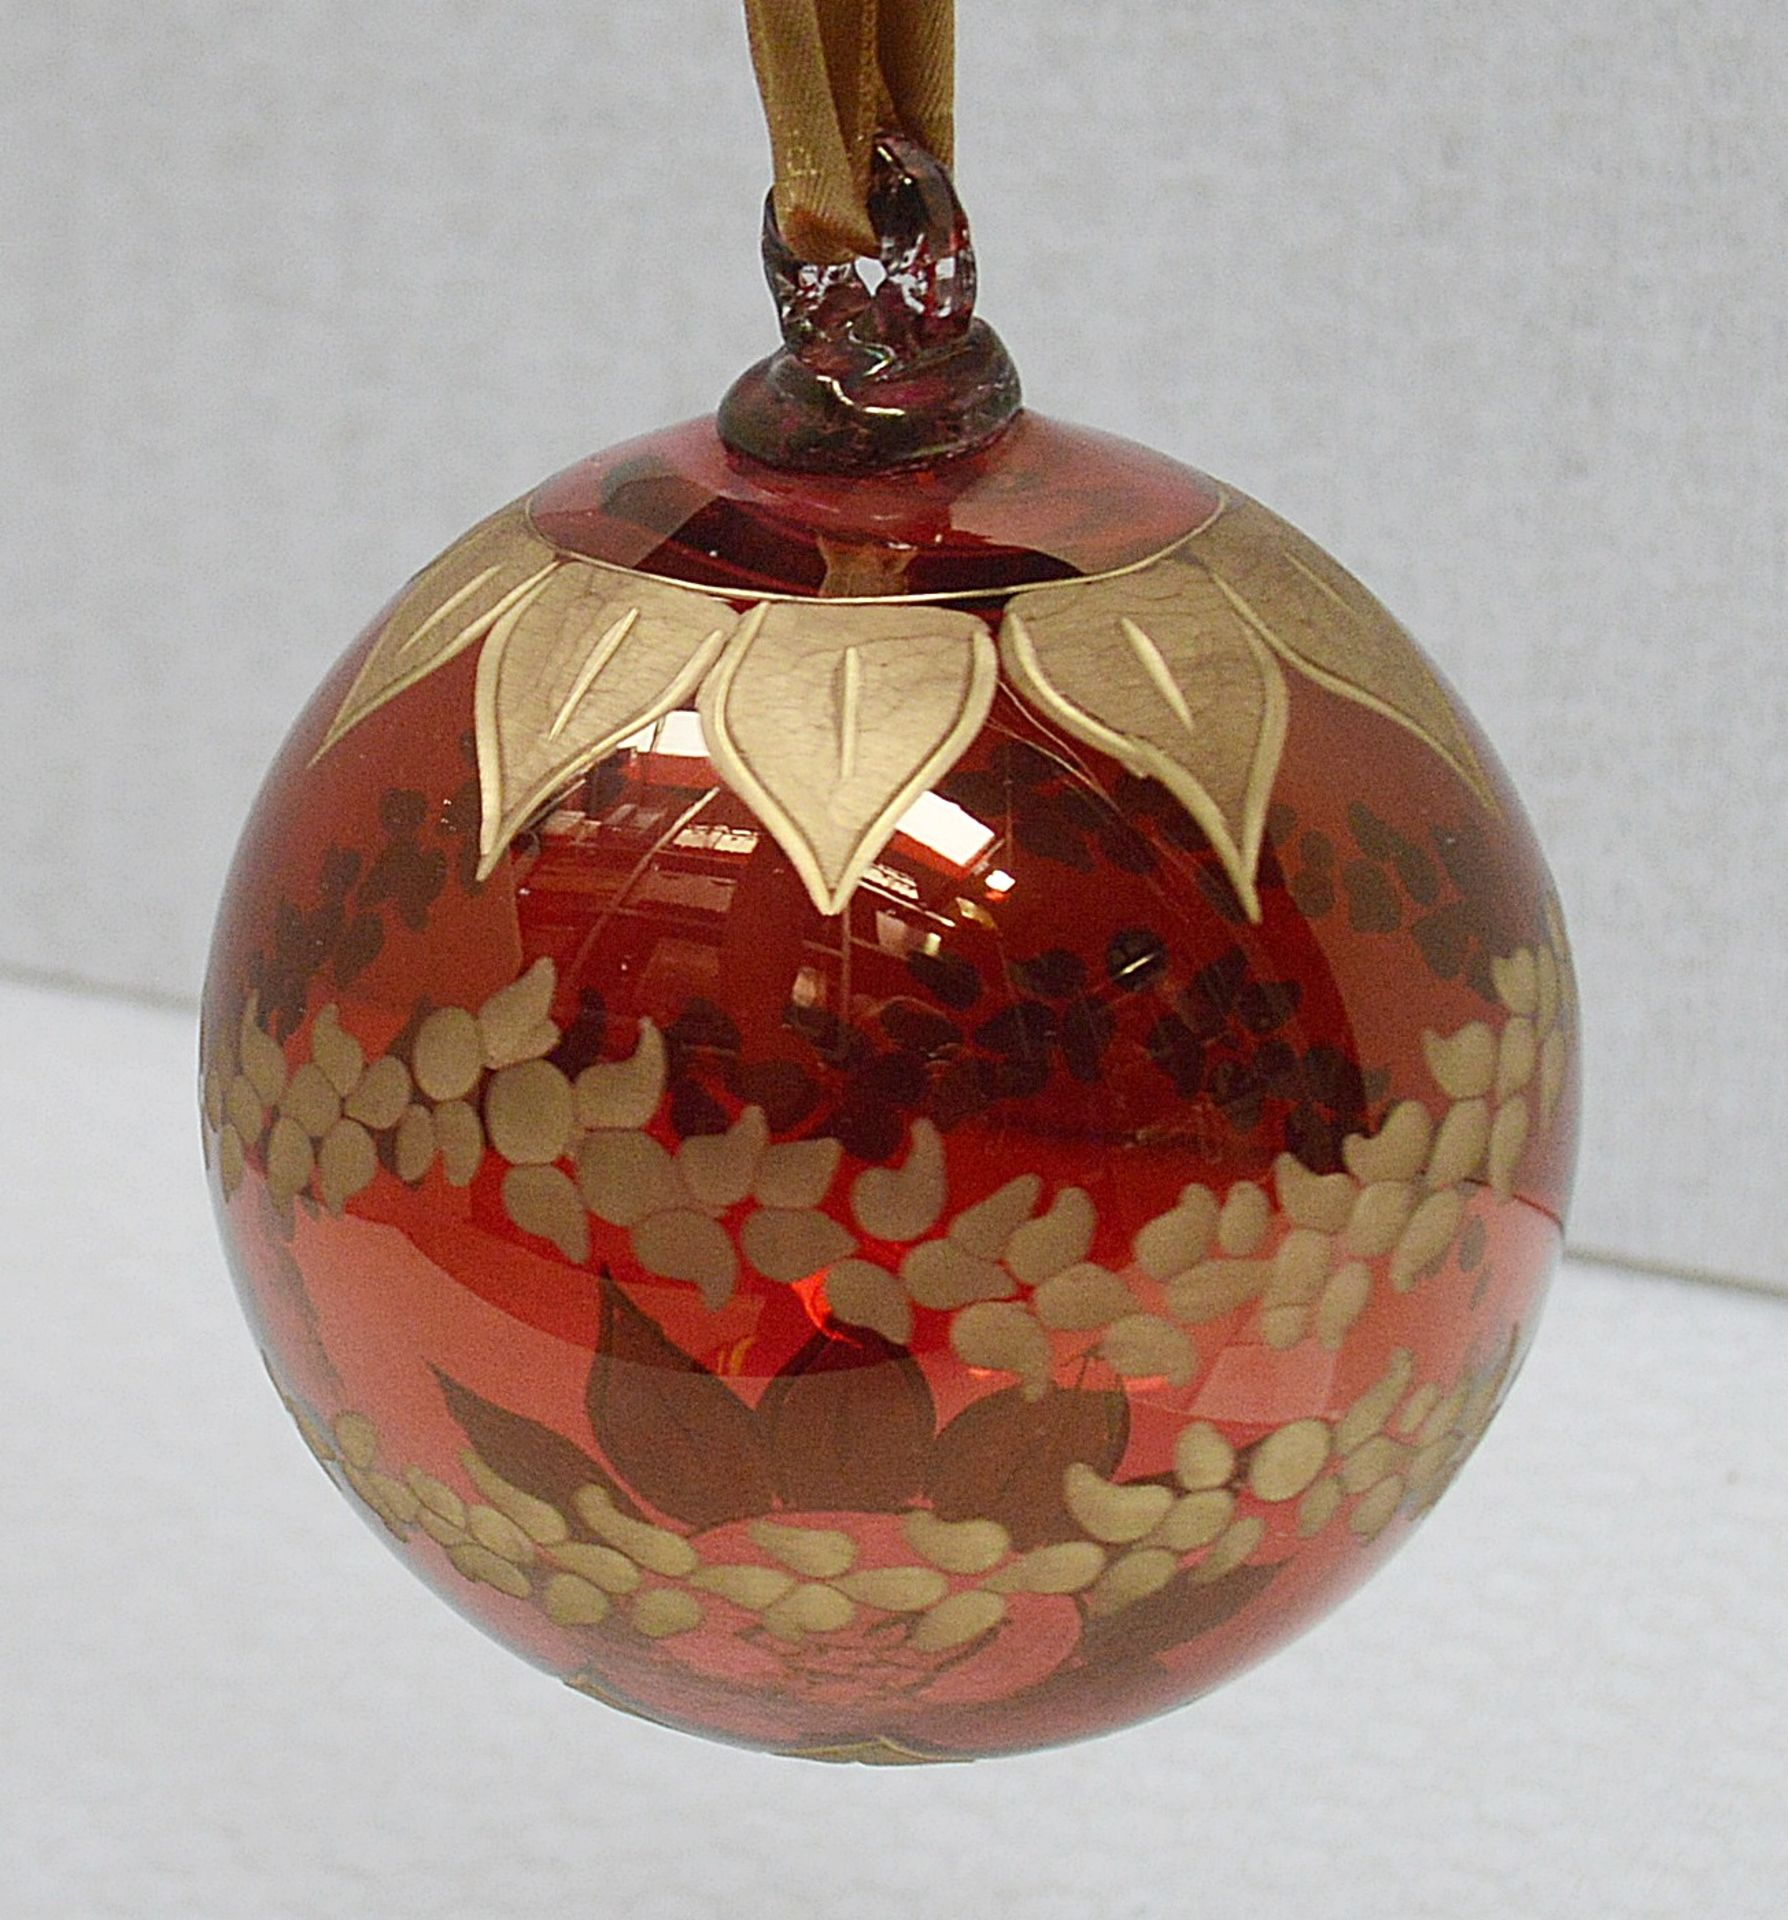 1 x BALDI 'Home Jewels' Italian Hand-crafted Artisan Christmas Tree Decoration In Red And Gold -